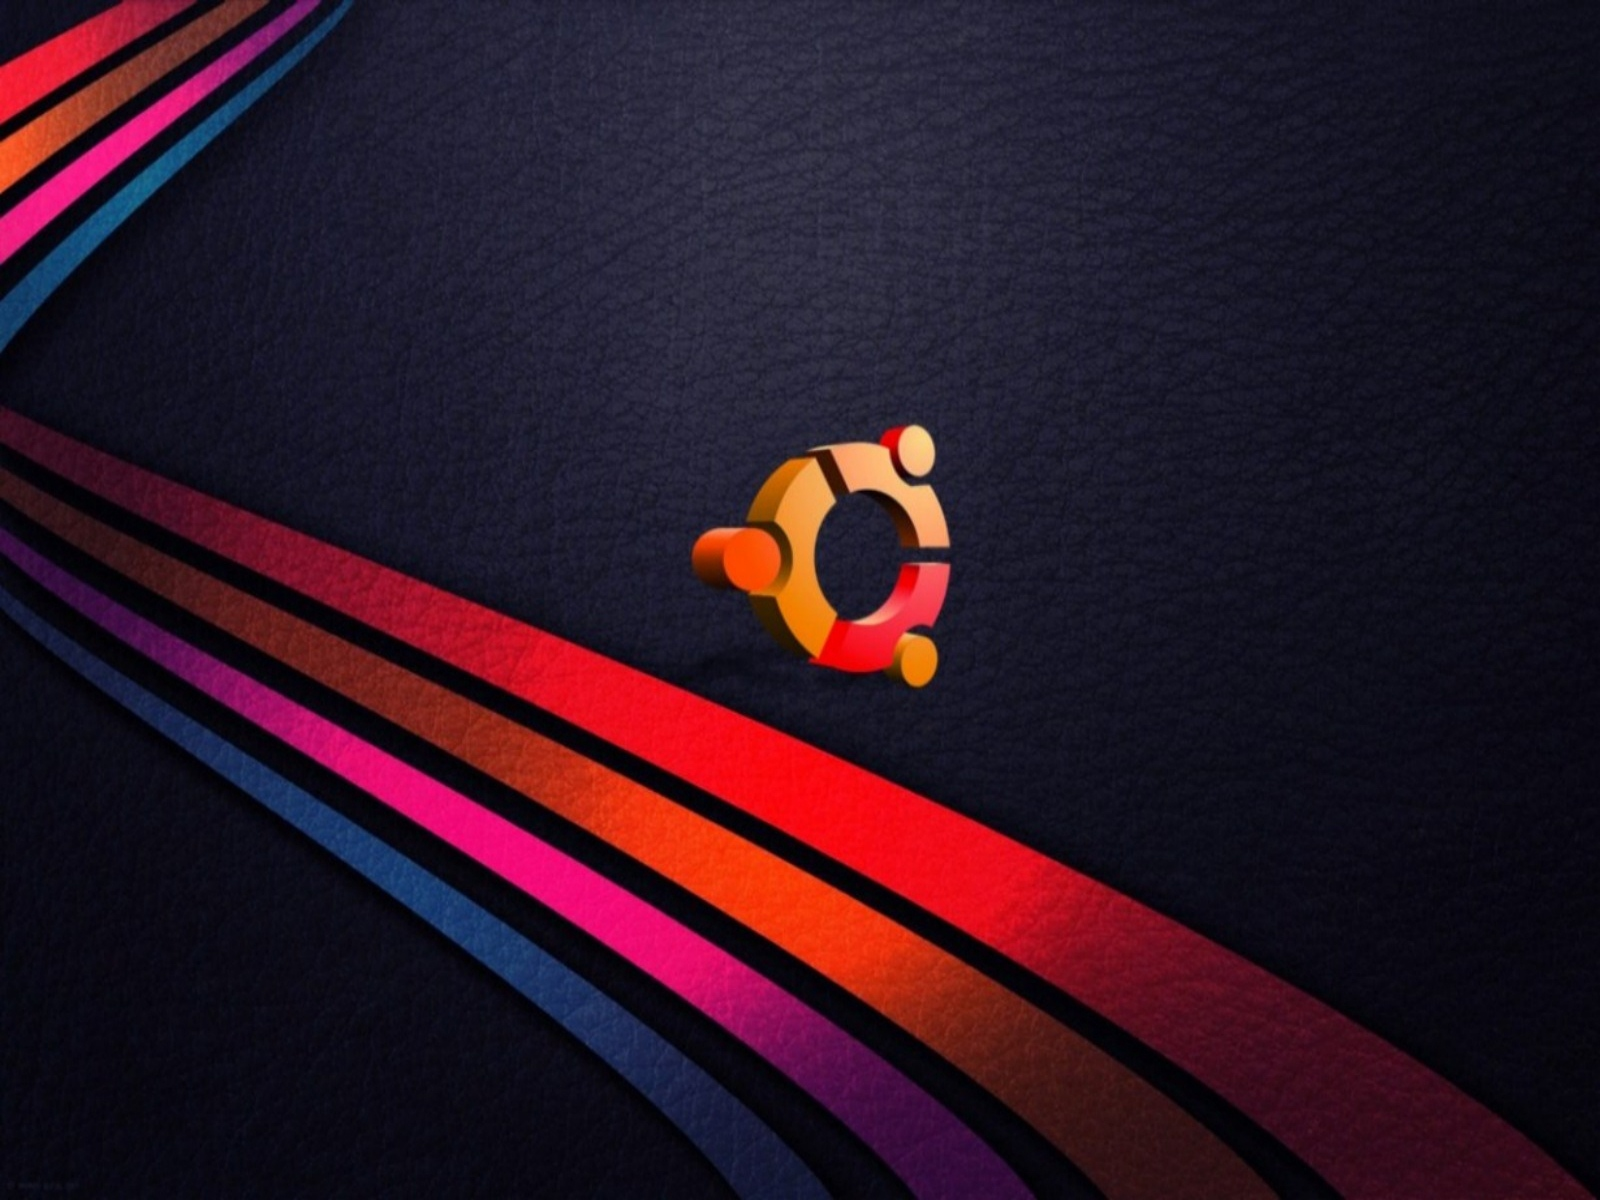 Ubuntu 3D Logo Wallpapers | 1080p Wallpapers: Ubuntu 3D ...